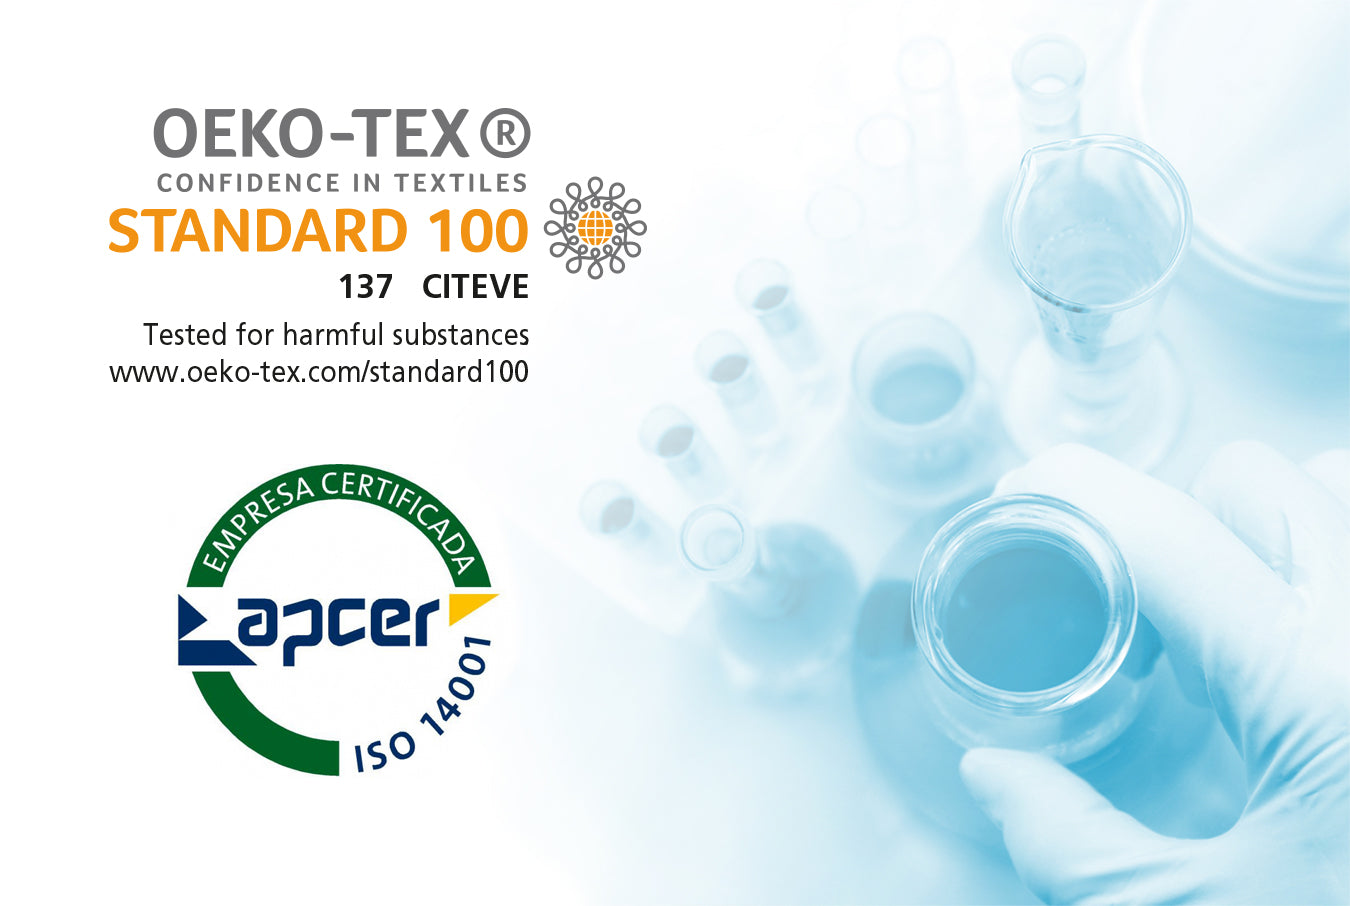 Our manufacturer is Oeko-tex and Apcer certified